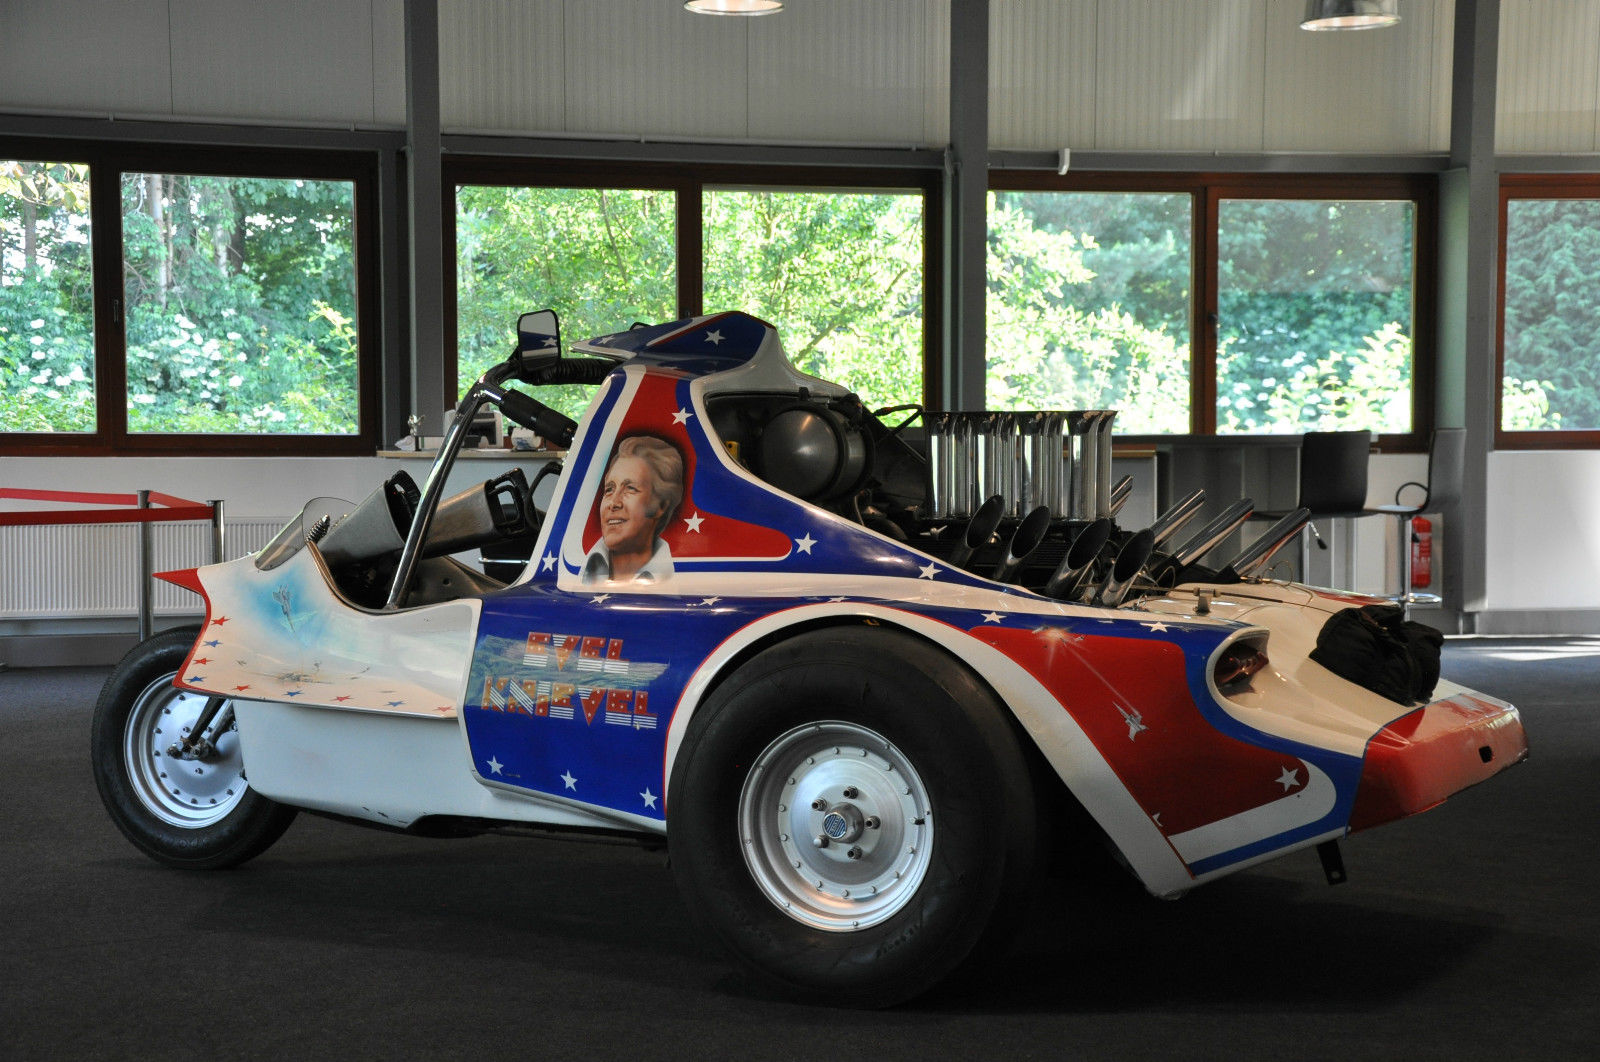 Myth BUSTED: Here's the Deal On That Evel Knievel Trike, Straight From His Son, Kelly Knievel And The History Books